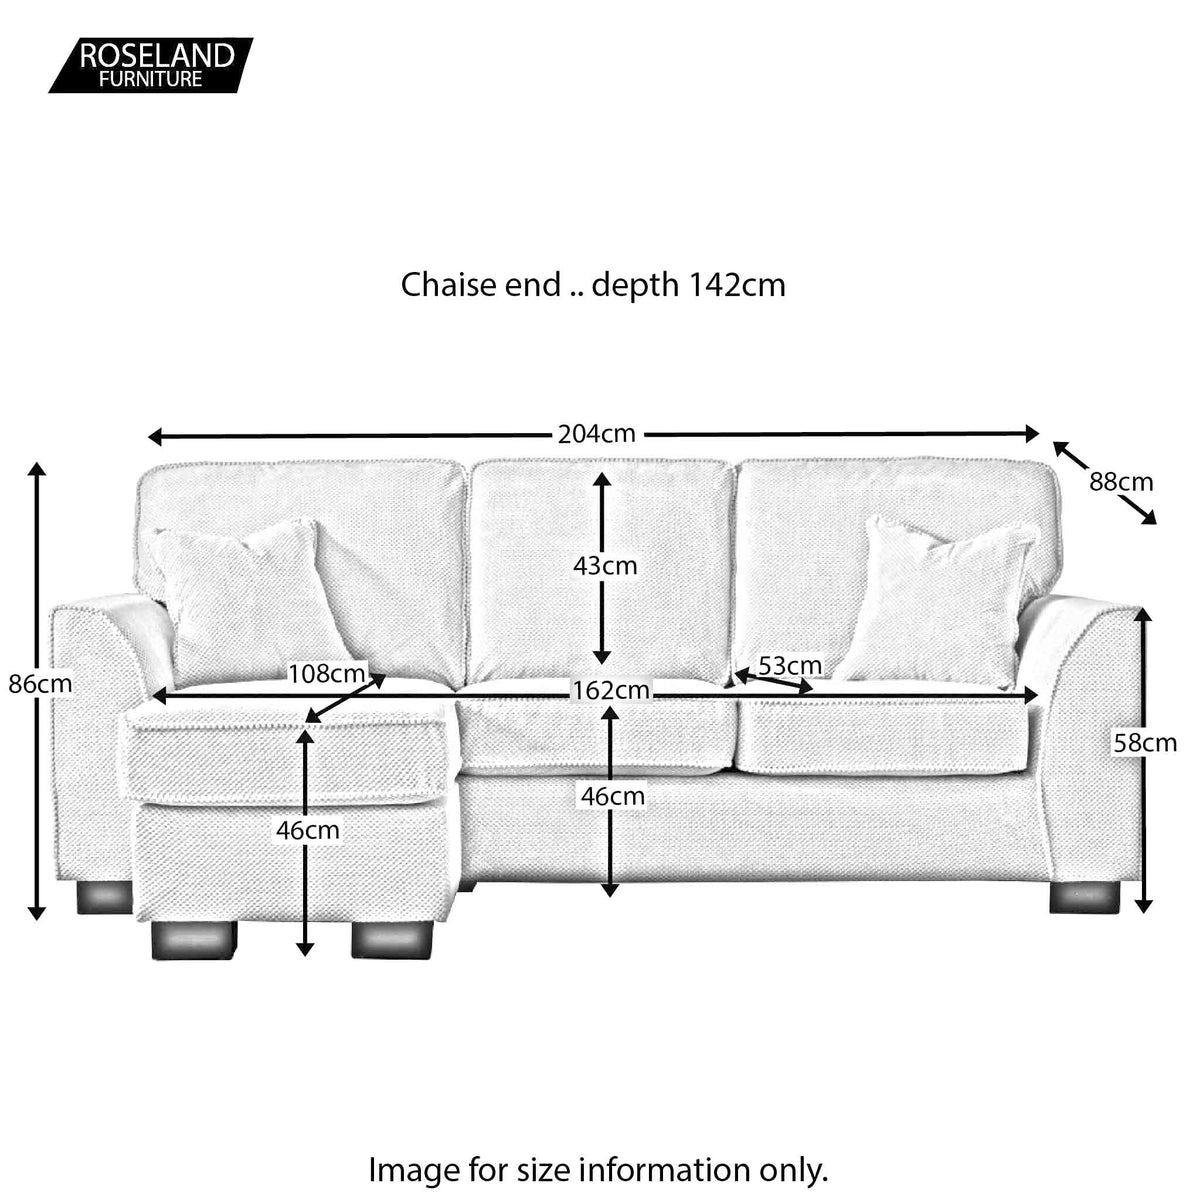 Dallas Corner Chaise Sofa - Size Guide